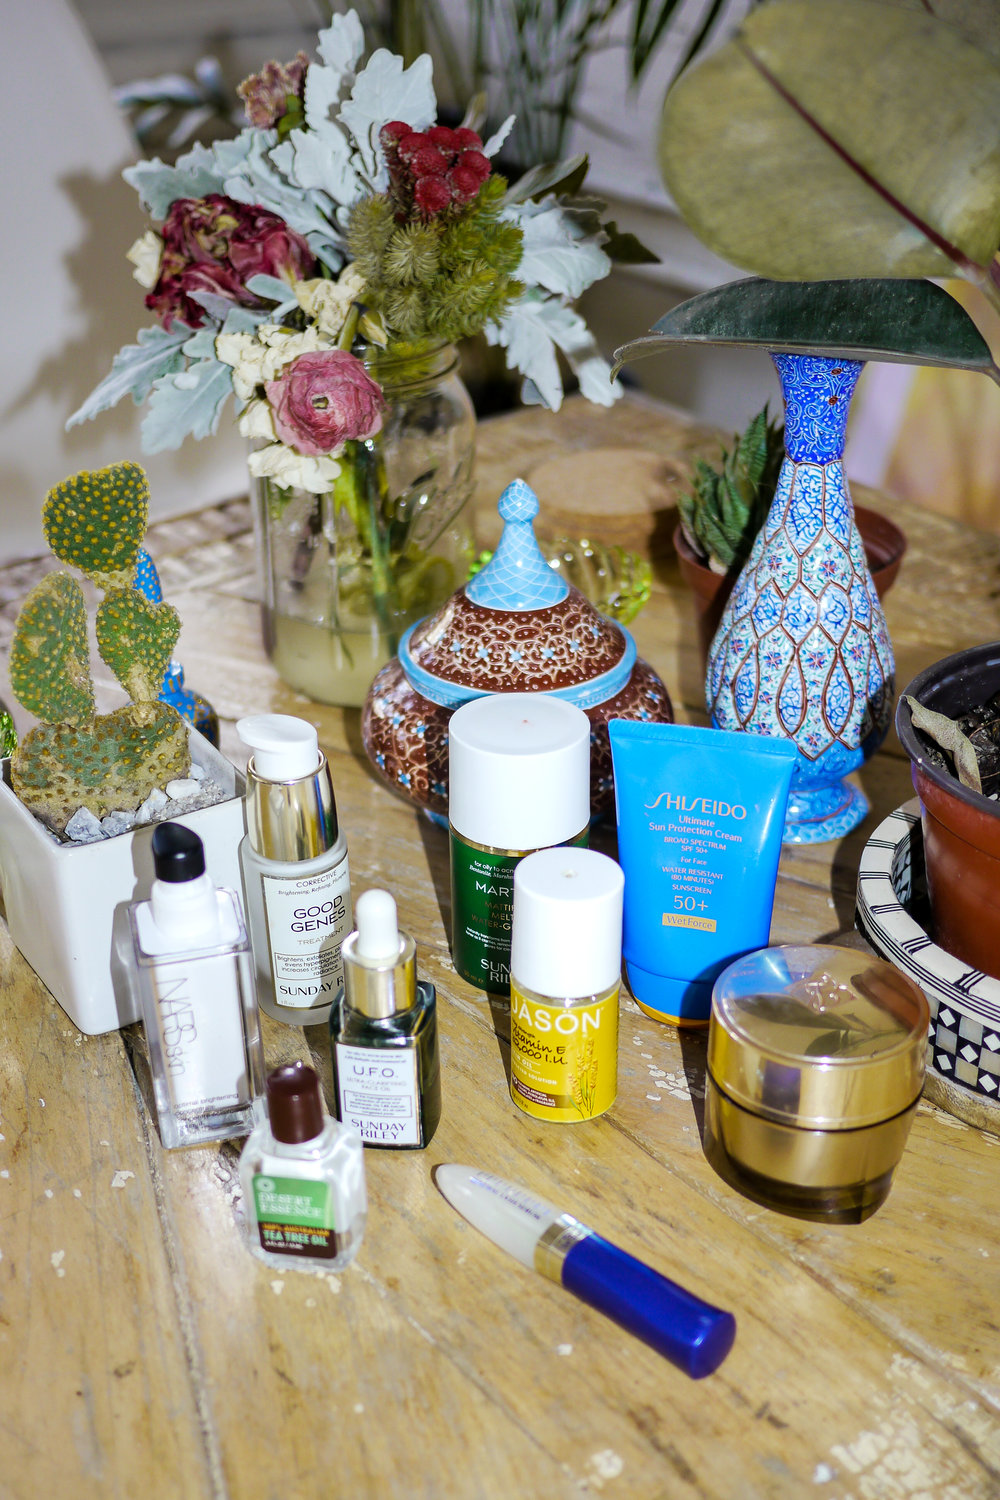 Bianca's beauty products